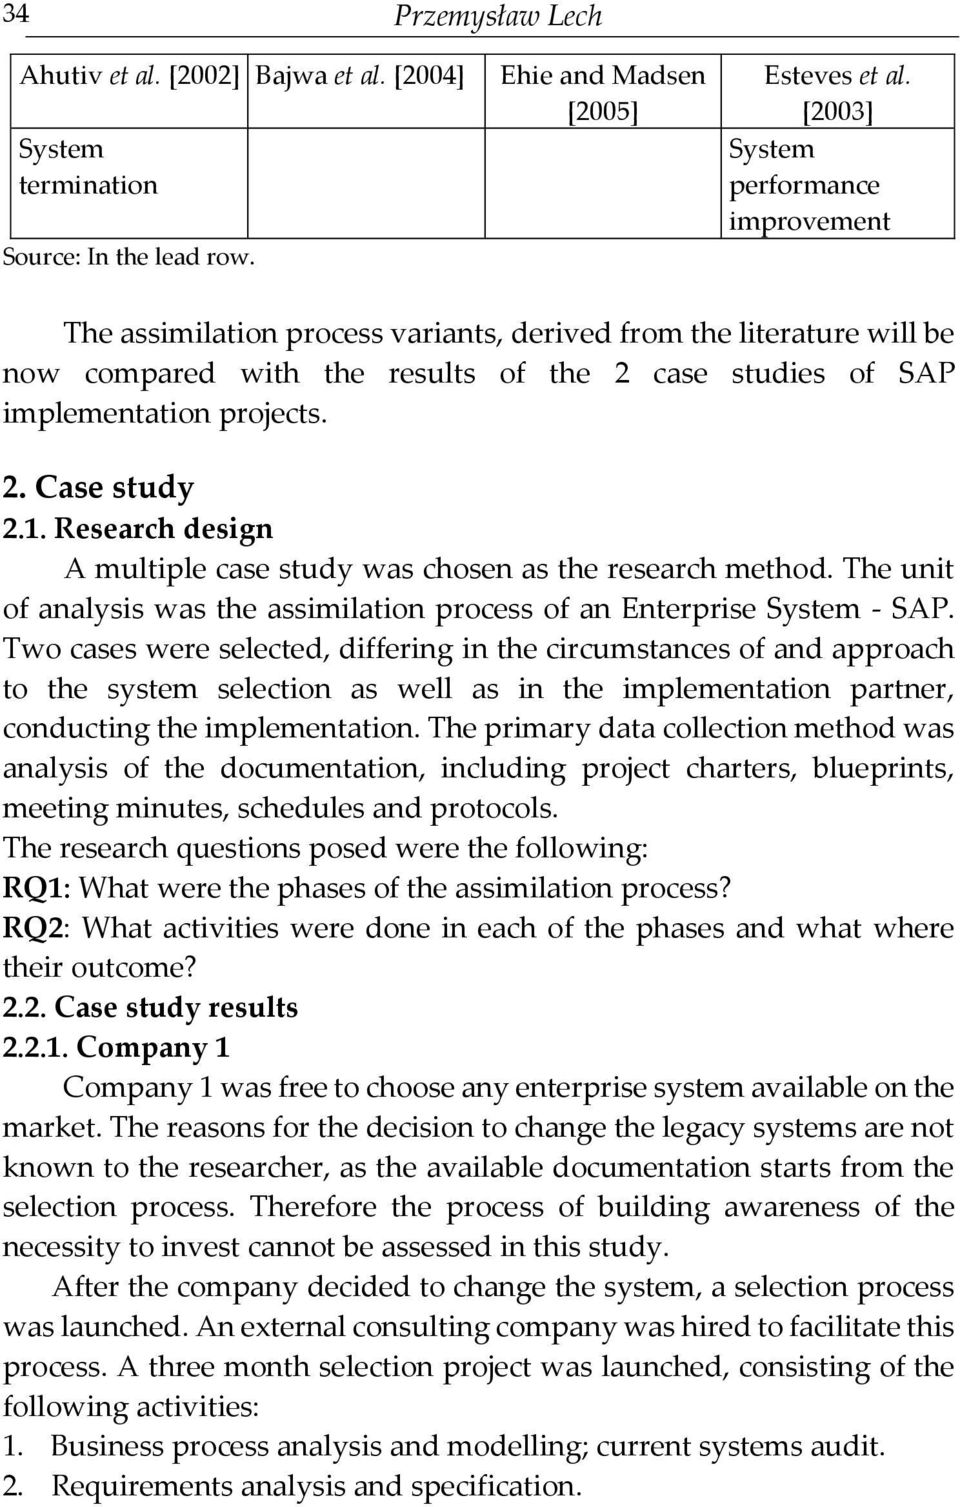 1. Research design A multiple case study was chosen as the research method. The unit of analysis was the assimilation process of an Enterprise System - SAP.